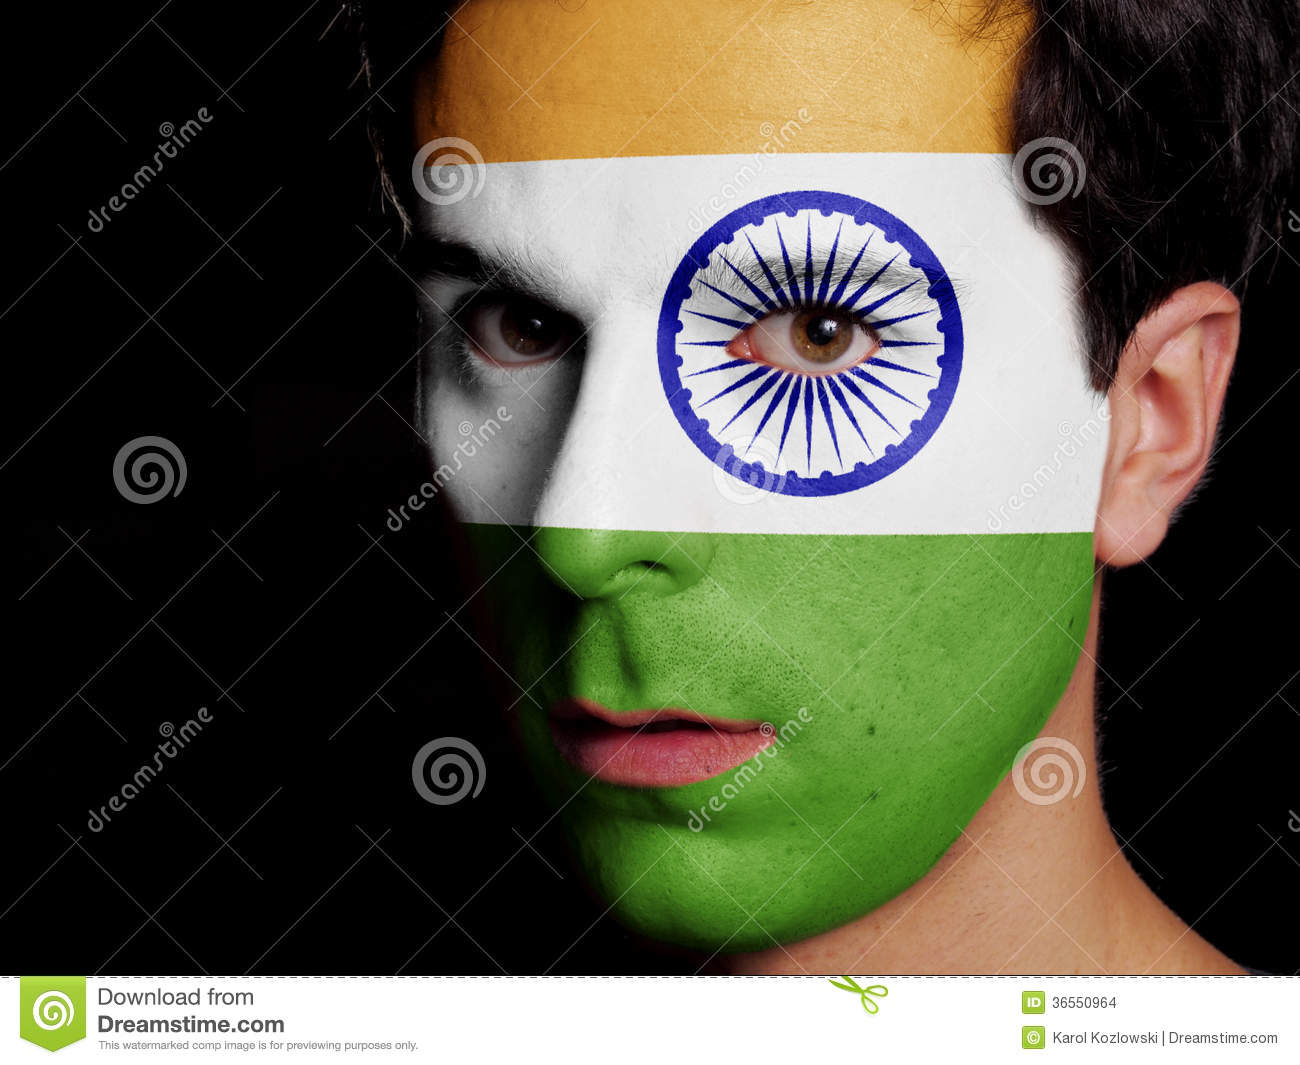 Face Paint Flag India Photos Free Royalty Free Stock Photos From Dreamstime